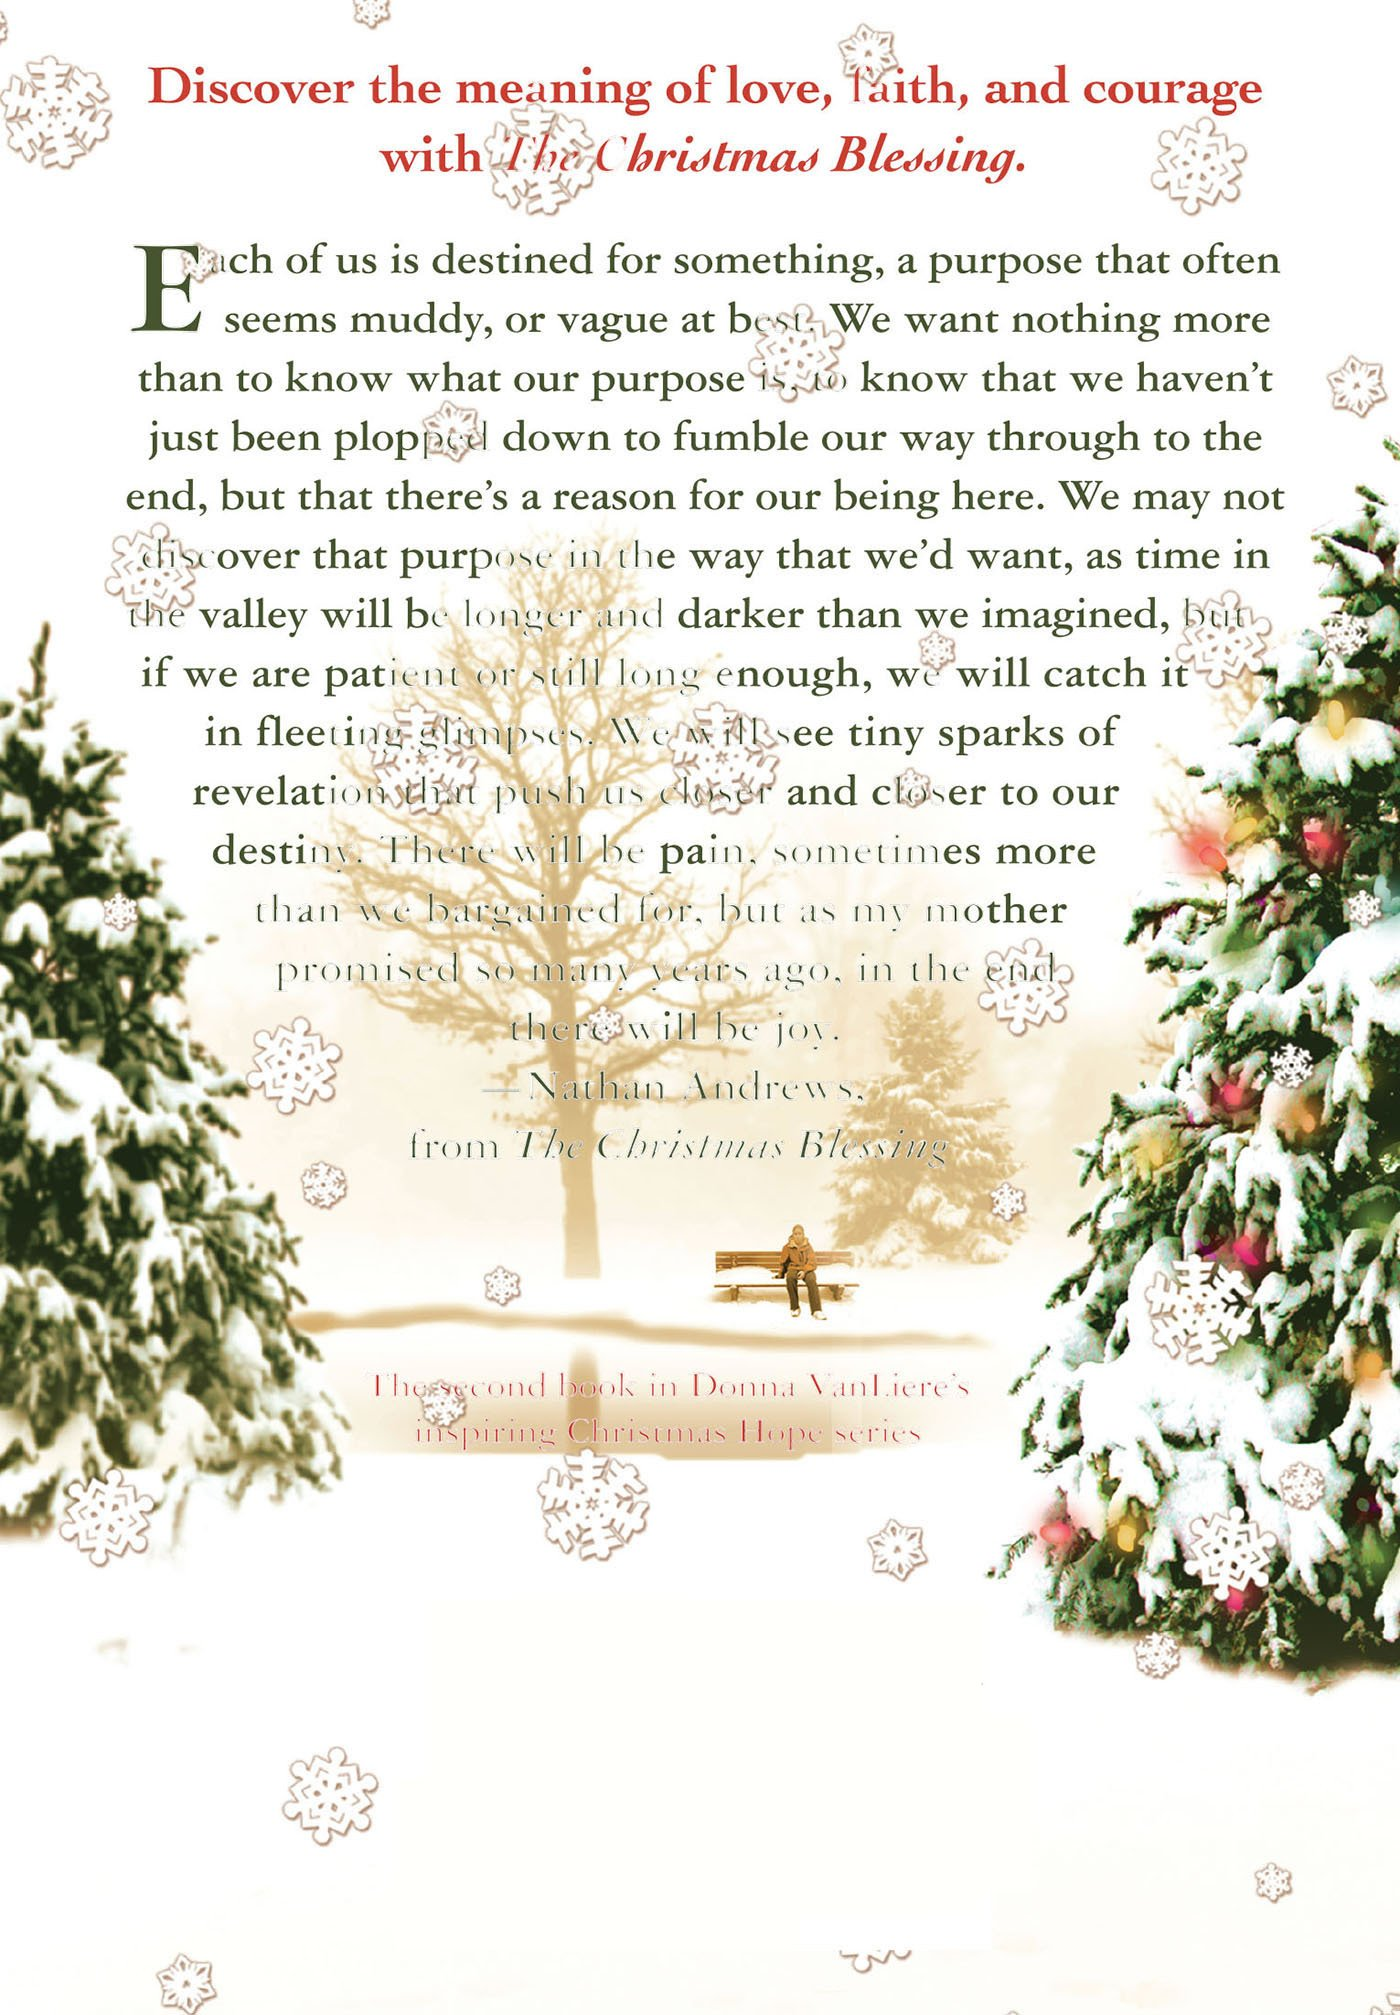 The Christmas Blessing (Christmas Hope Series #2): Donna VanLiere ...